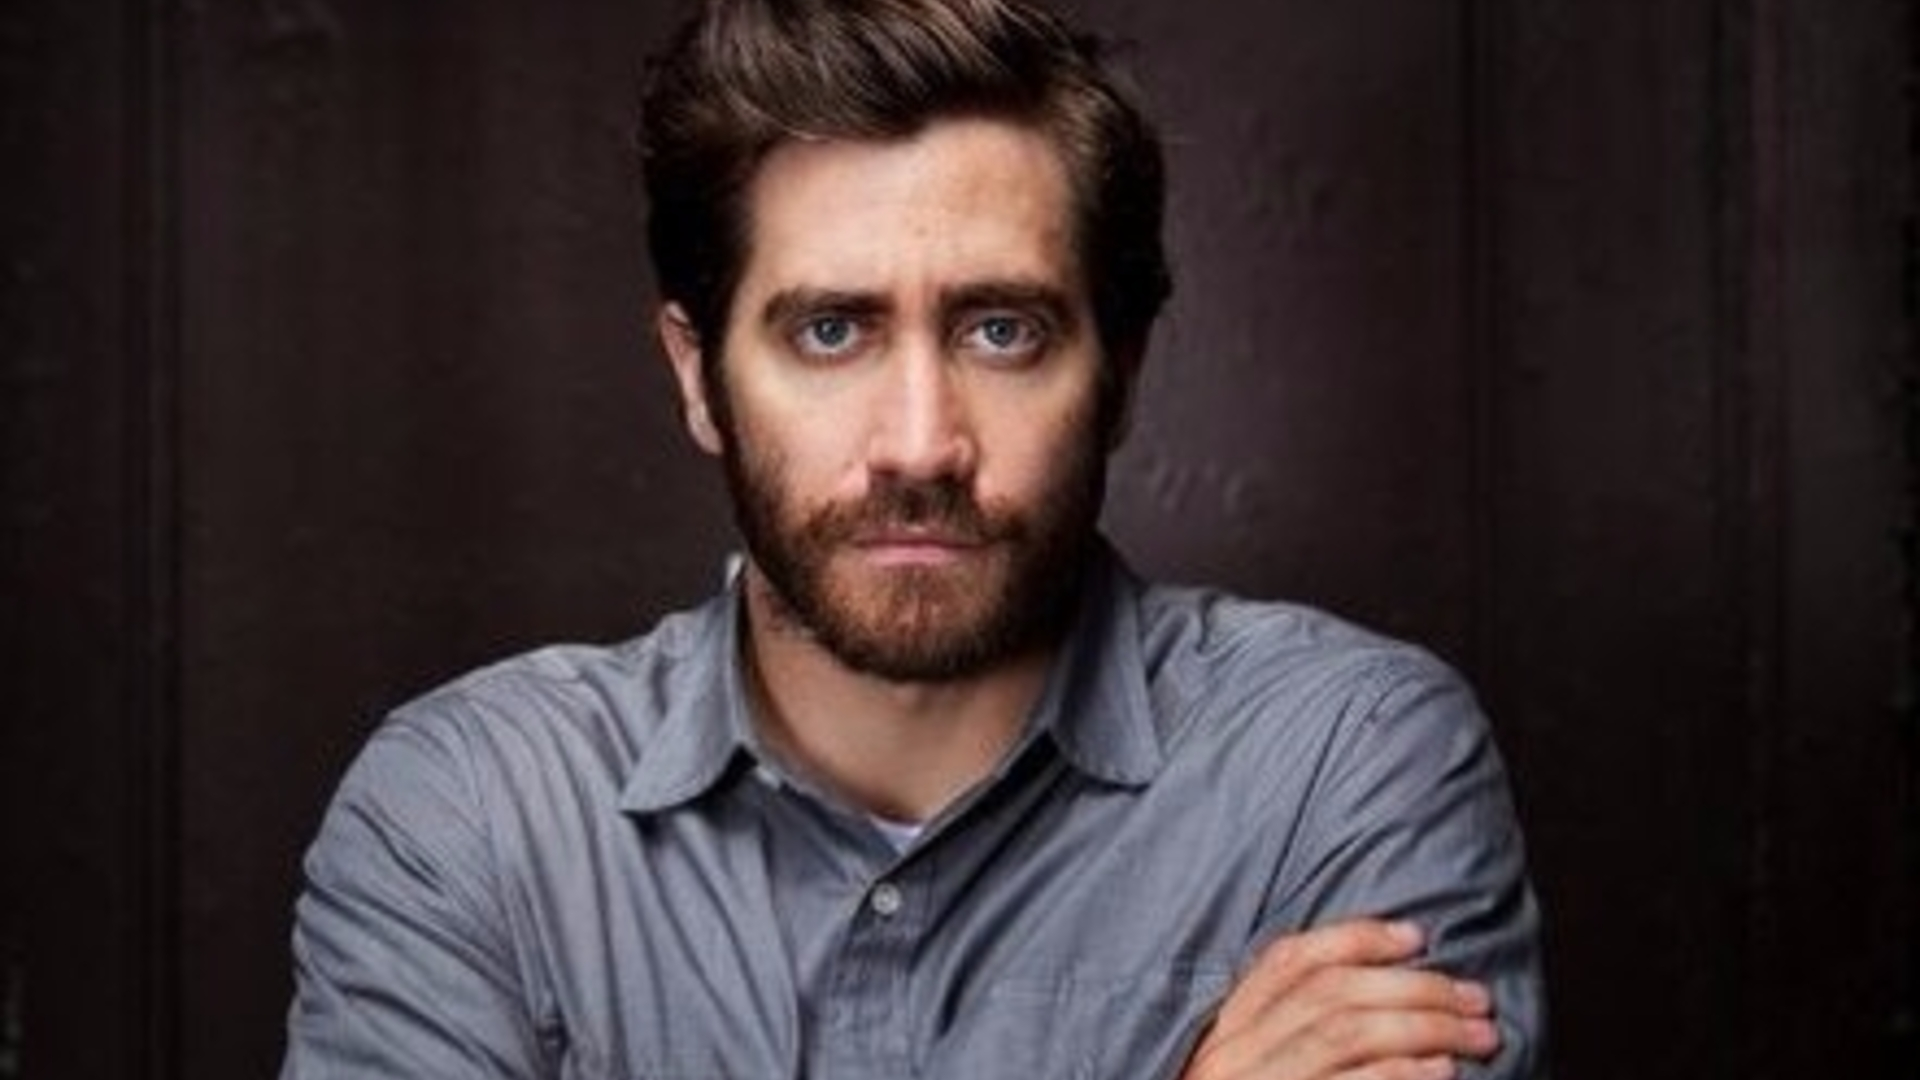 The Division is being made into a movie starring Jake Gyllenhaal - report